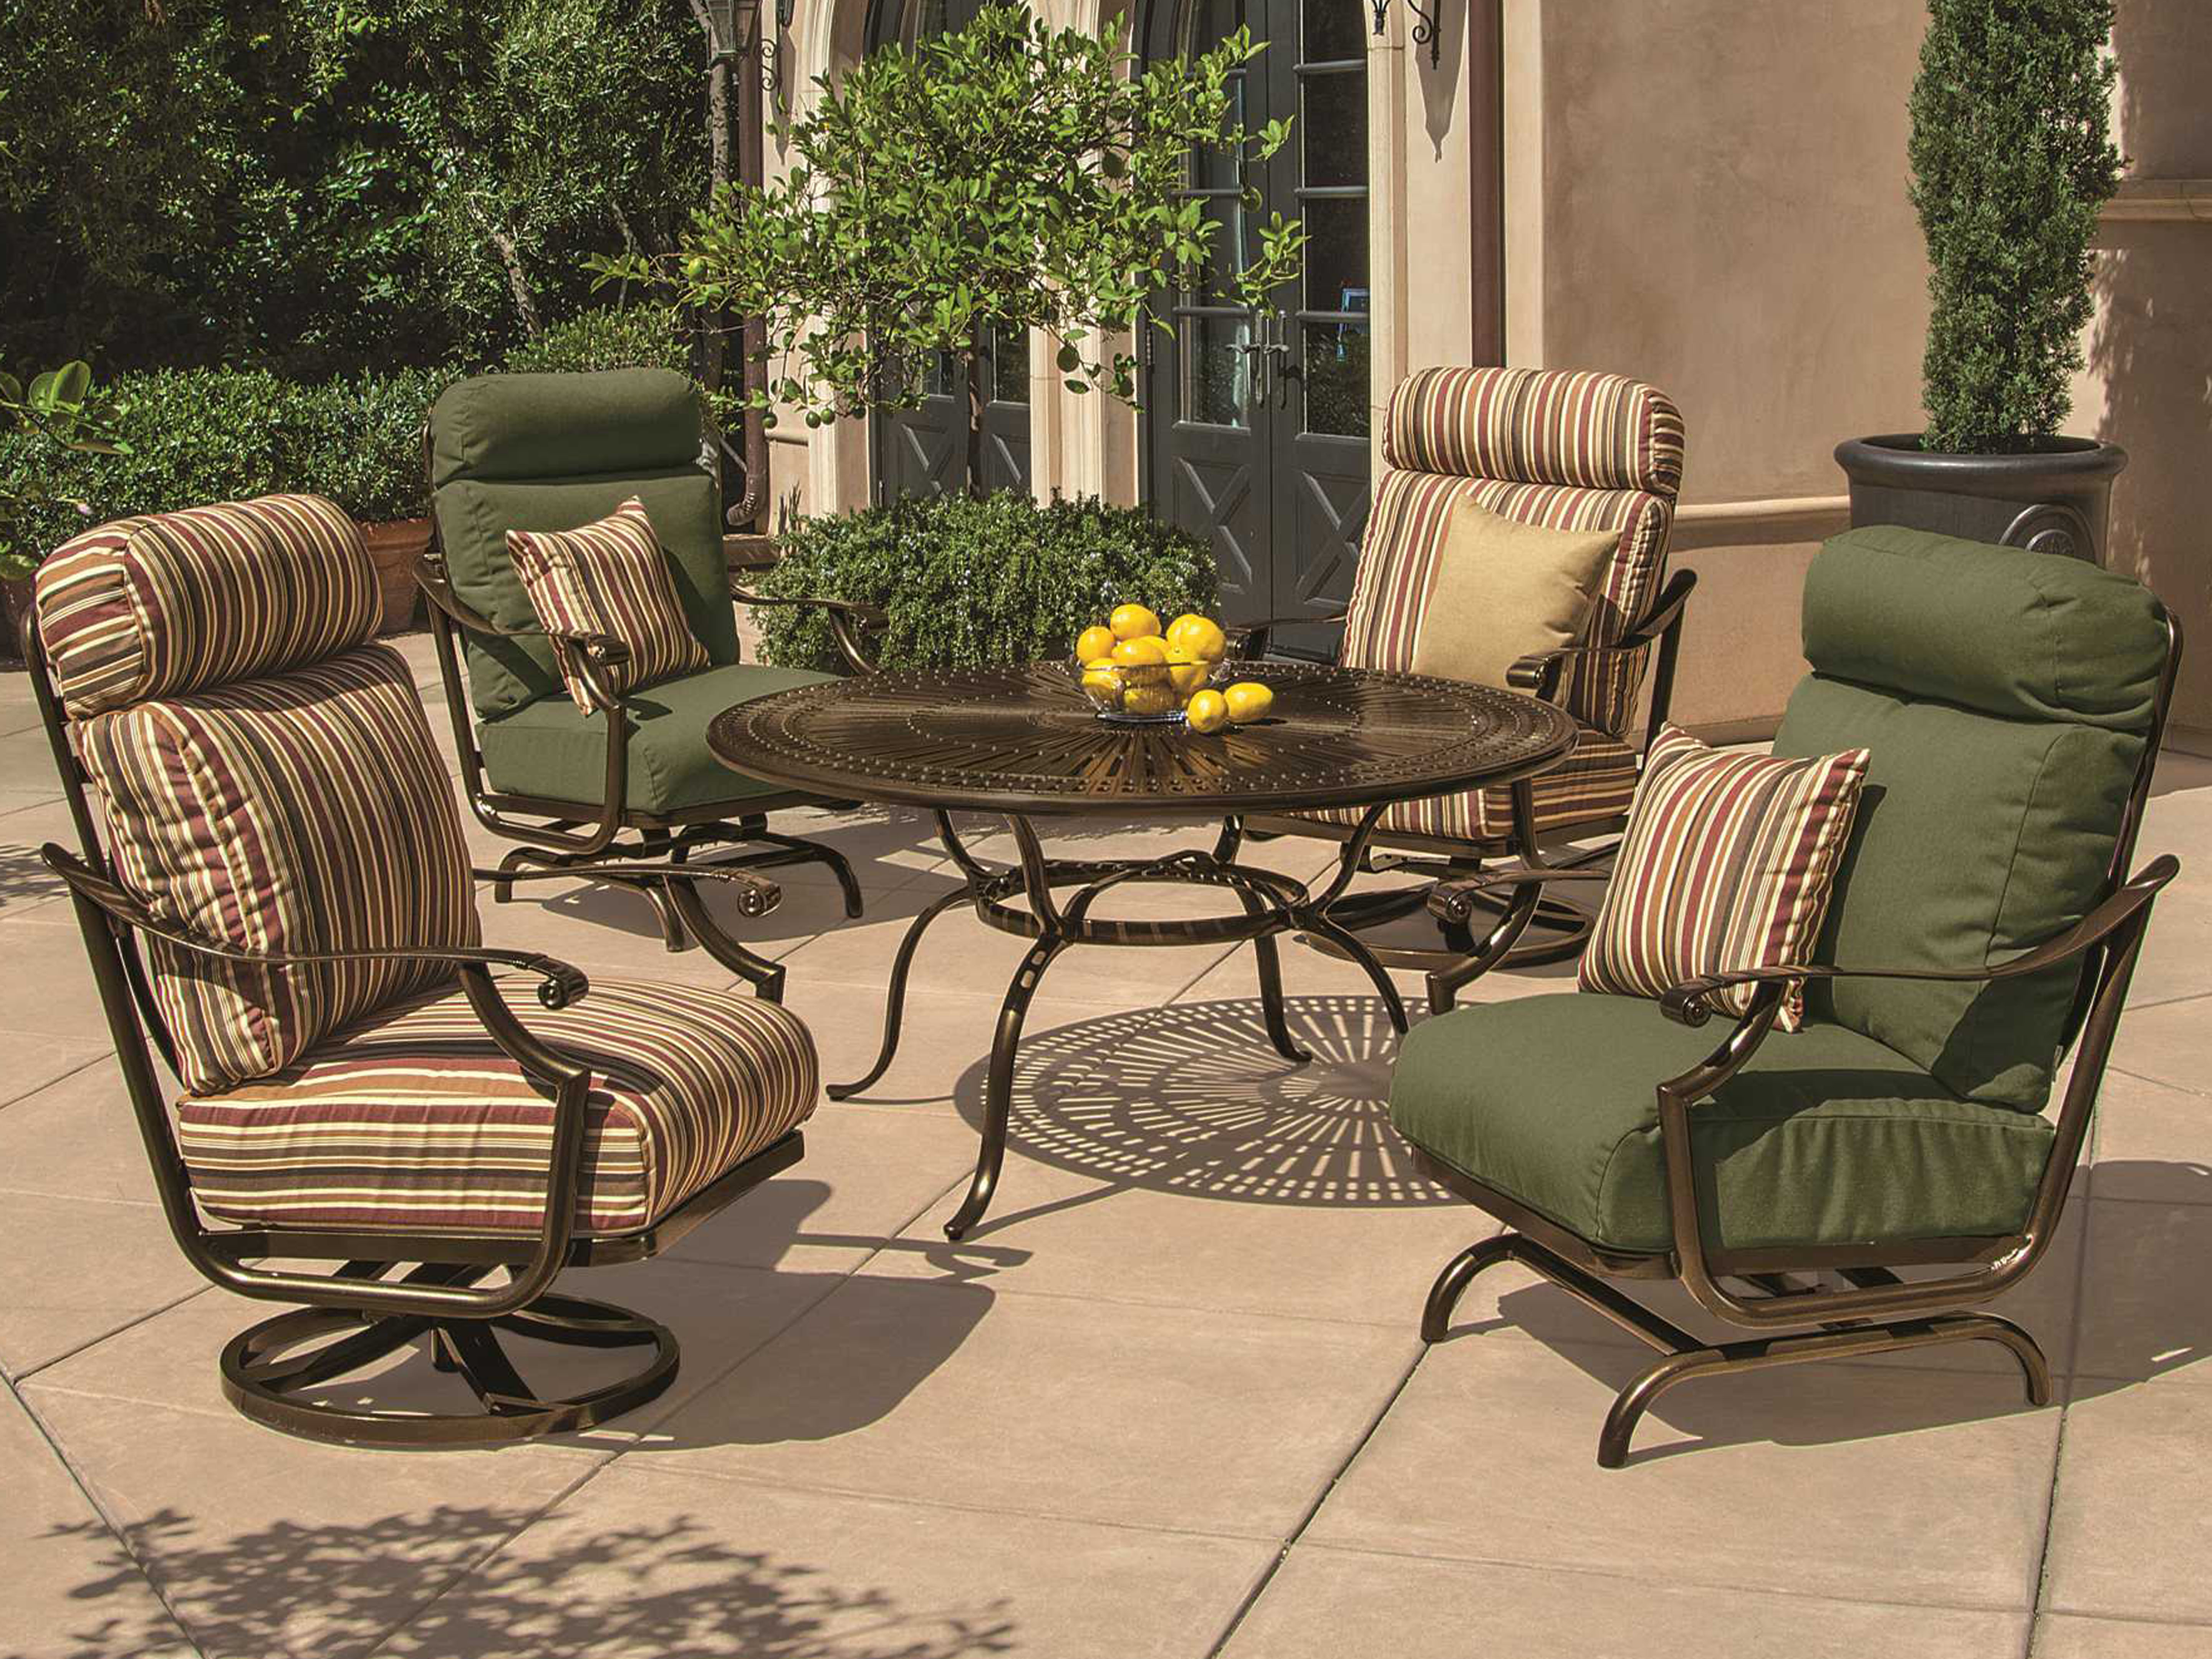 Tropitone Kd Spectrum Cast Aluminum  Round Chat Table With - Tropitone outdoor furniture